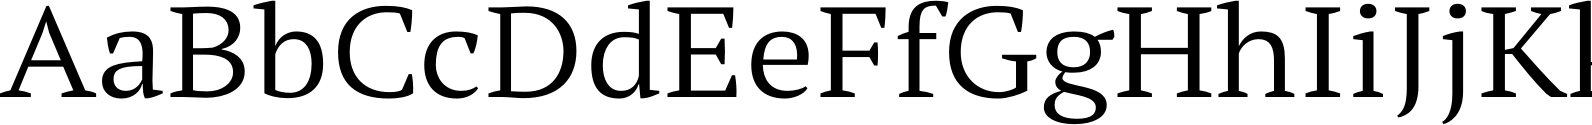 PT Serif Pro Extended Book